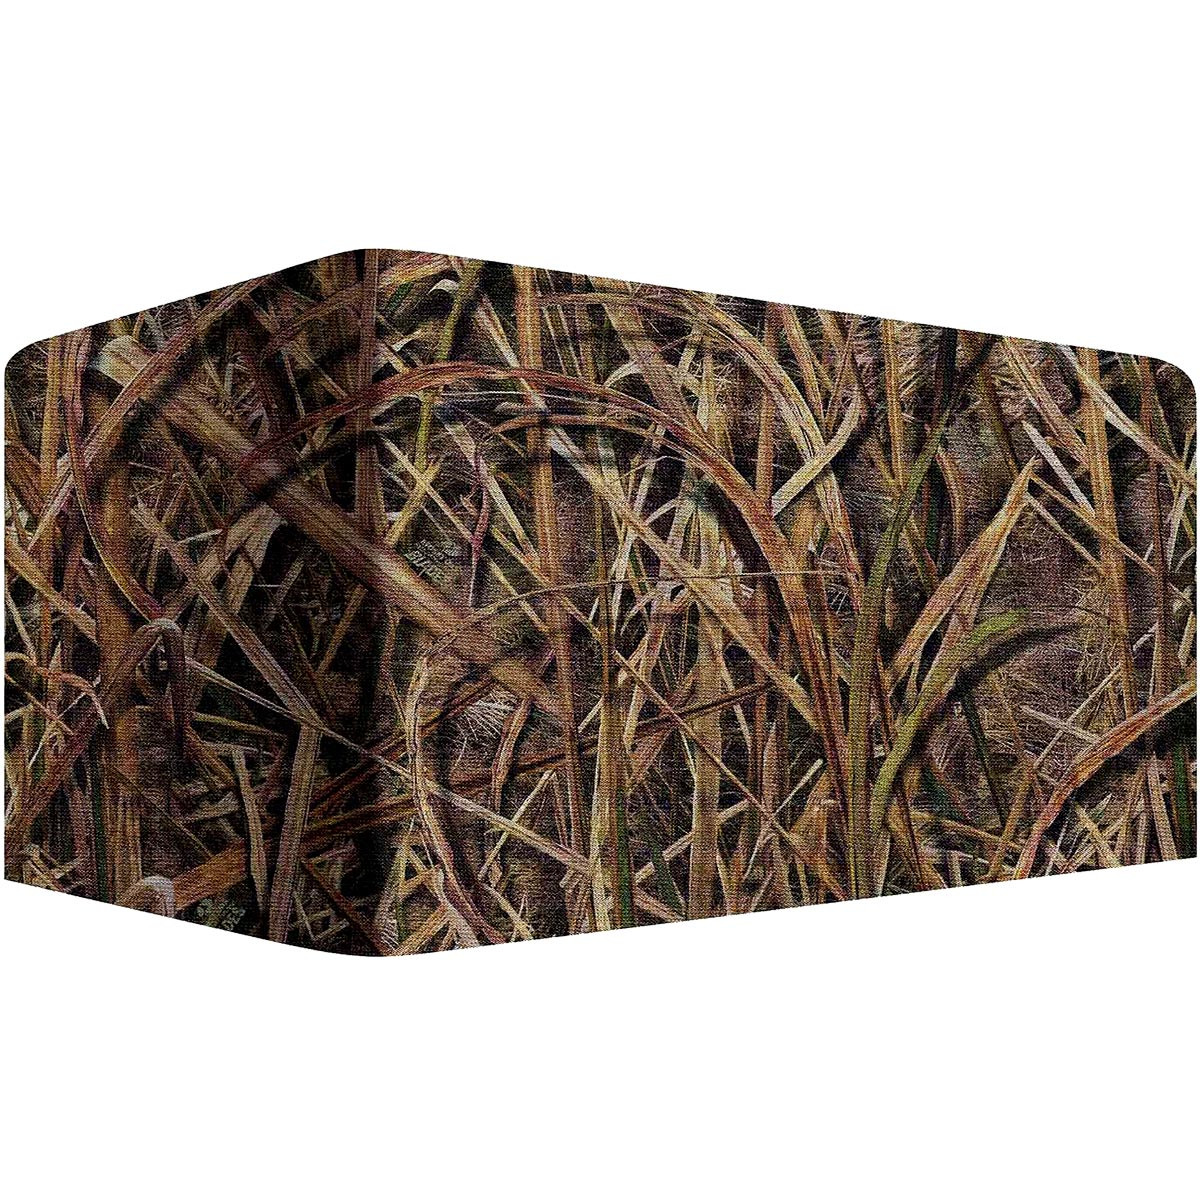 achat vente filet camouflage toile de jute mossy oak shadow grass blades pas cher 2734. Black Bedroom Furniture Sets. Home Design Ideas